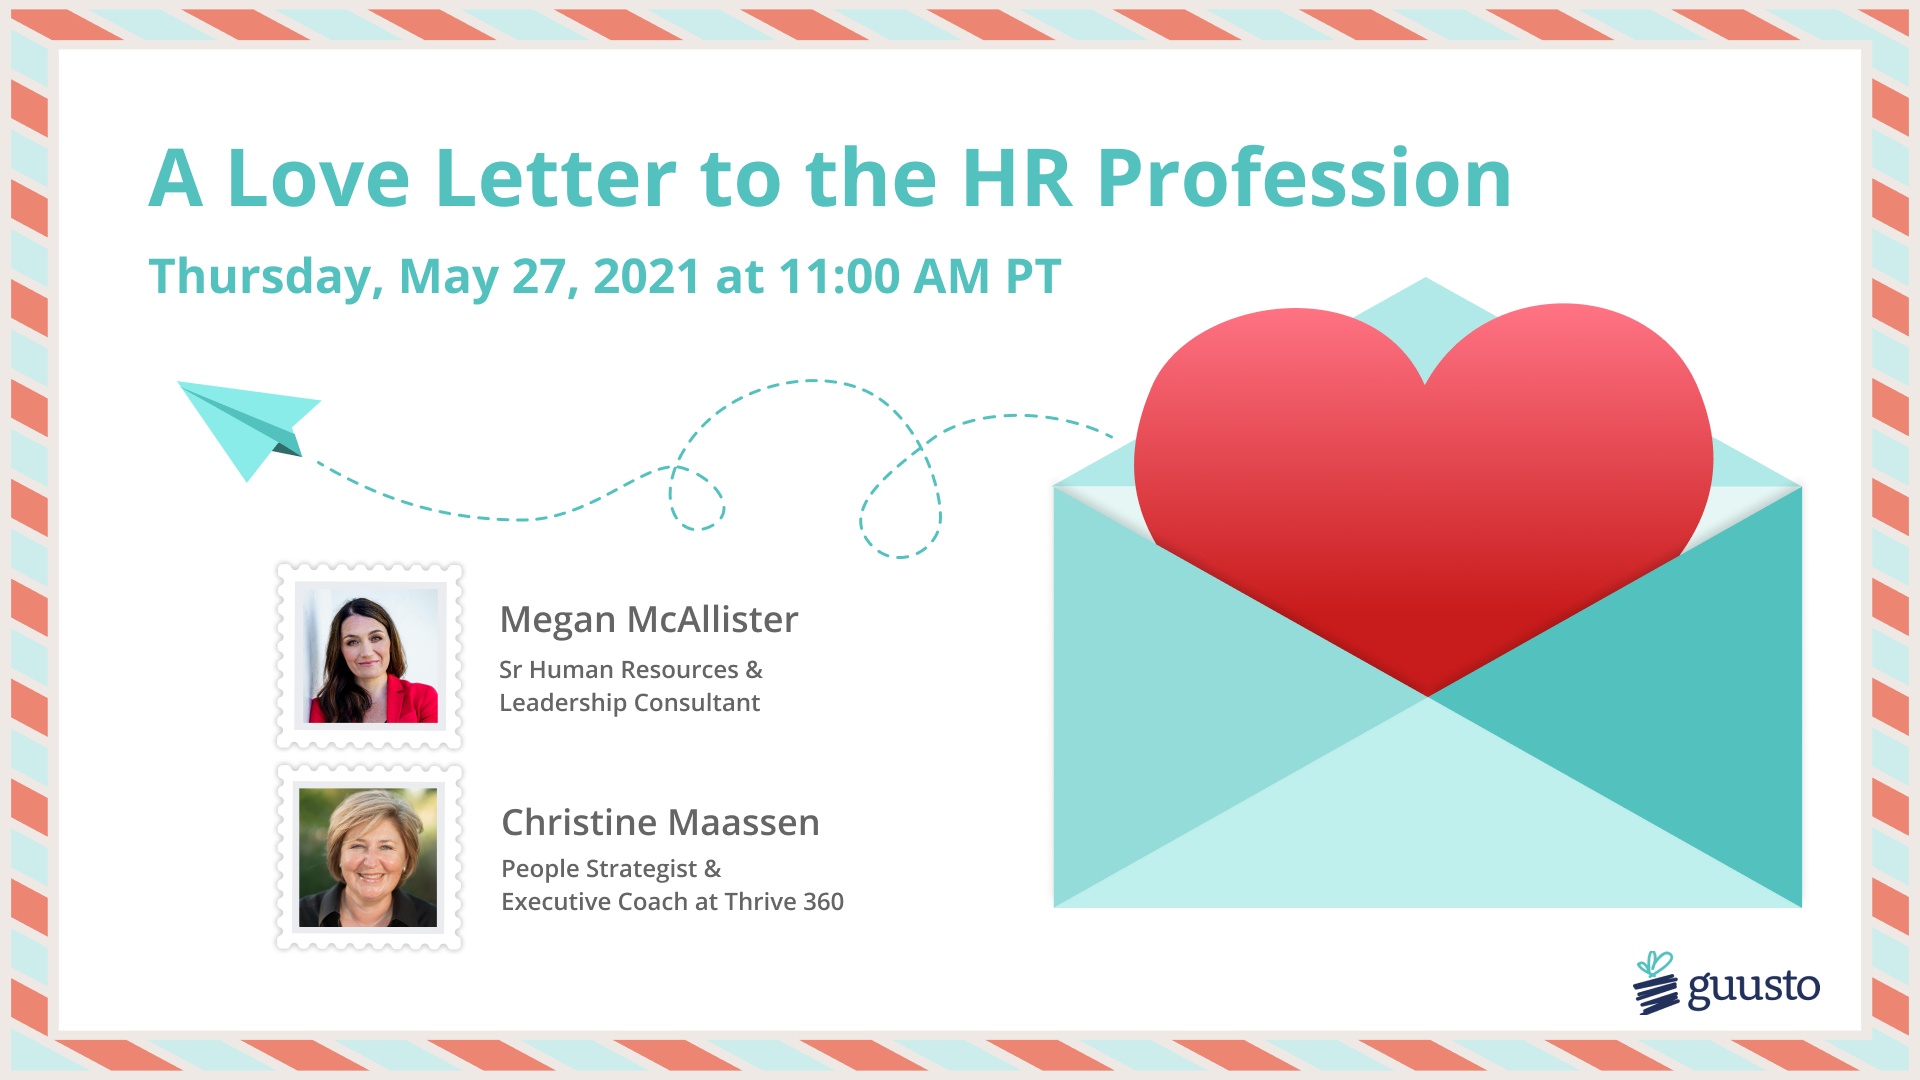 A Love Letter to the HR Profession